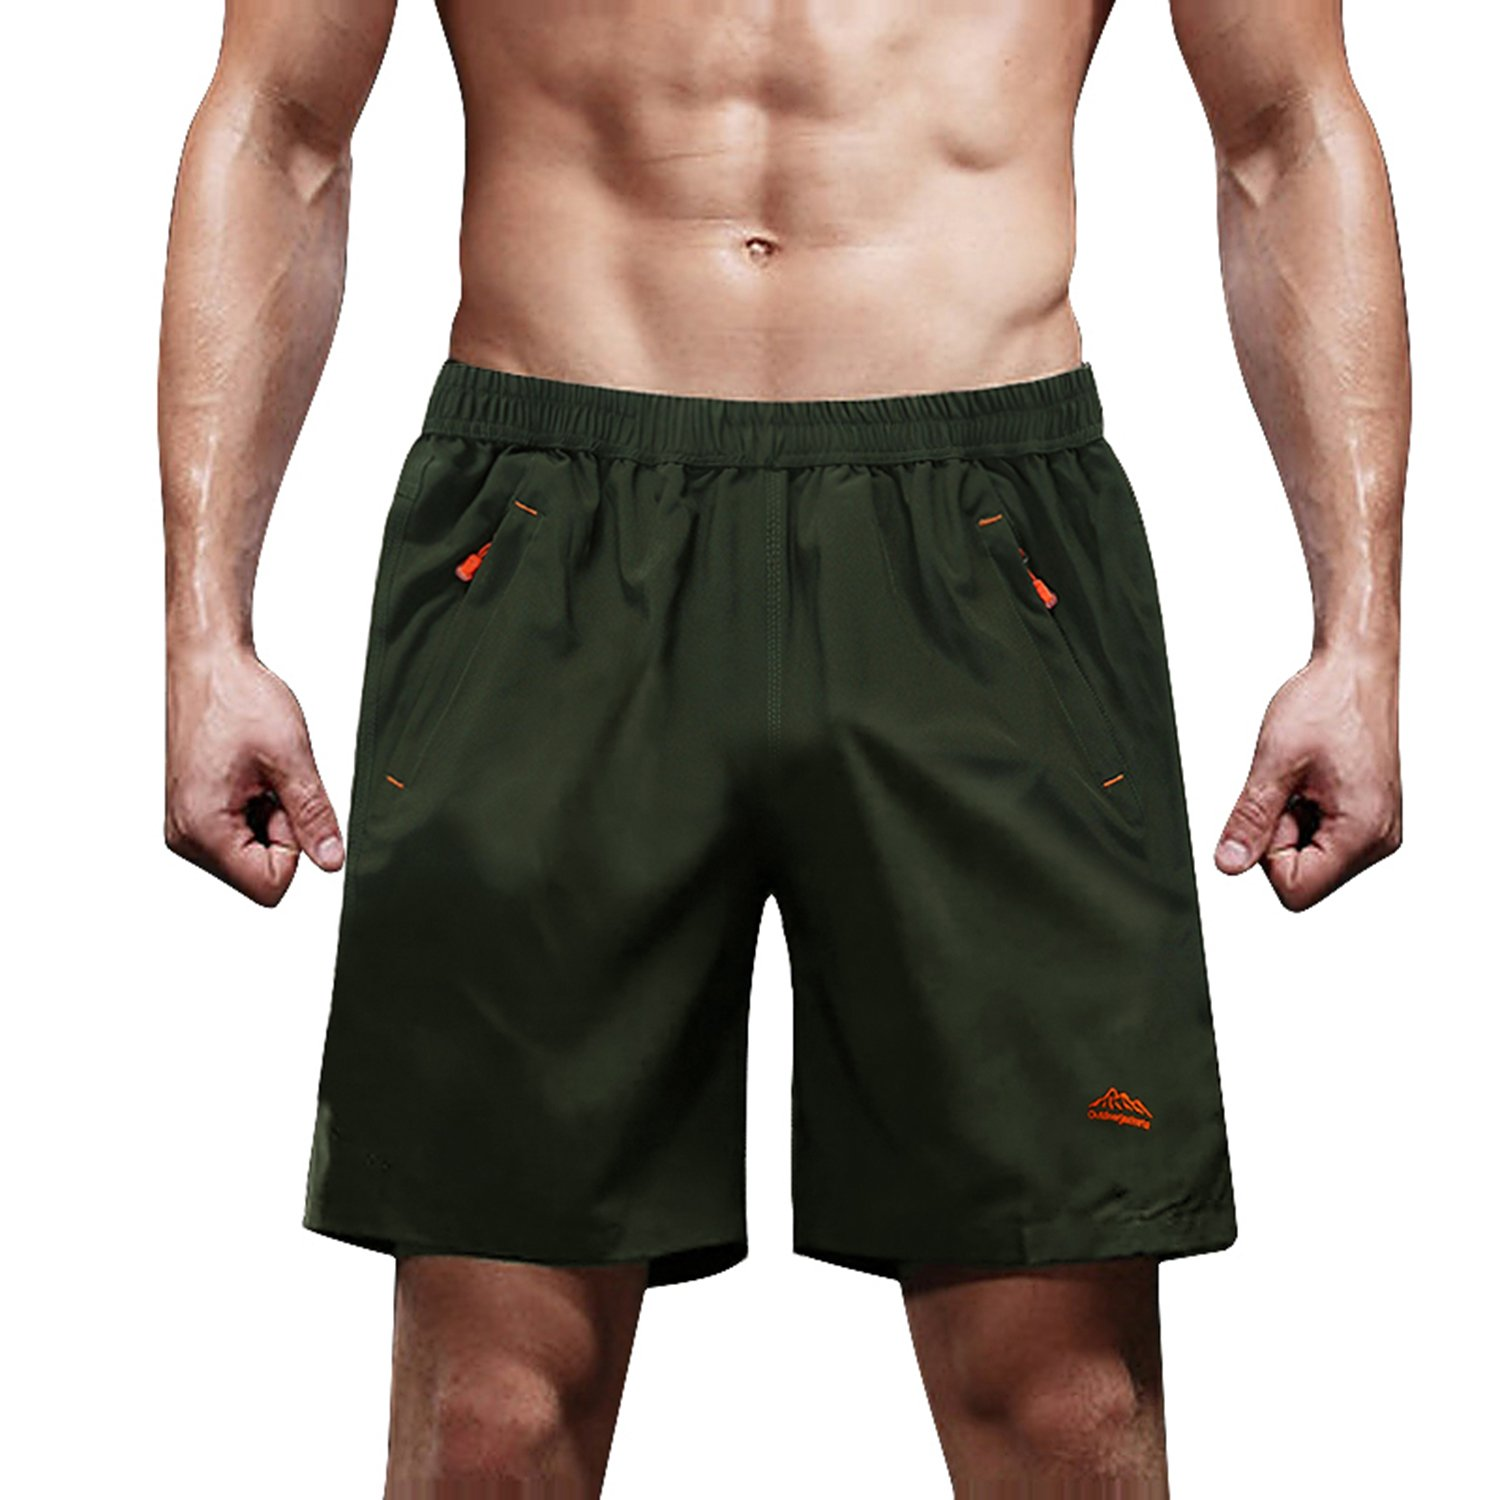 MAGCOMSEN Hiking Pants Men Quick Dry Shorts for Men Running Shorts 5 Inch Workout Shorts Mountain Shorts with Zip Pockets Green